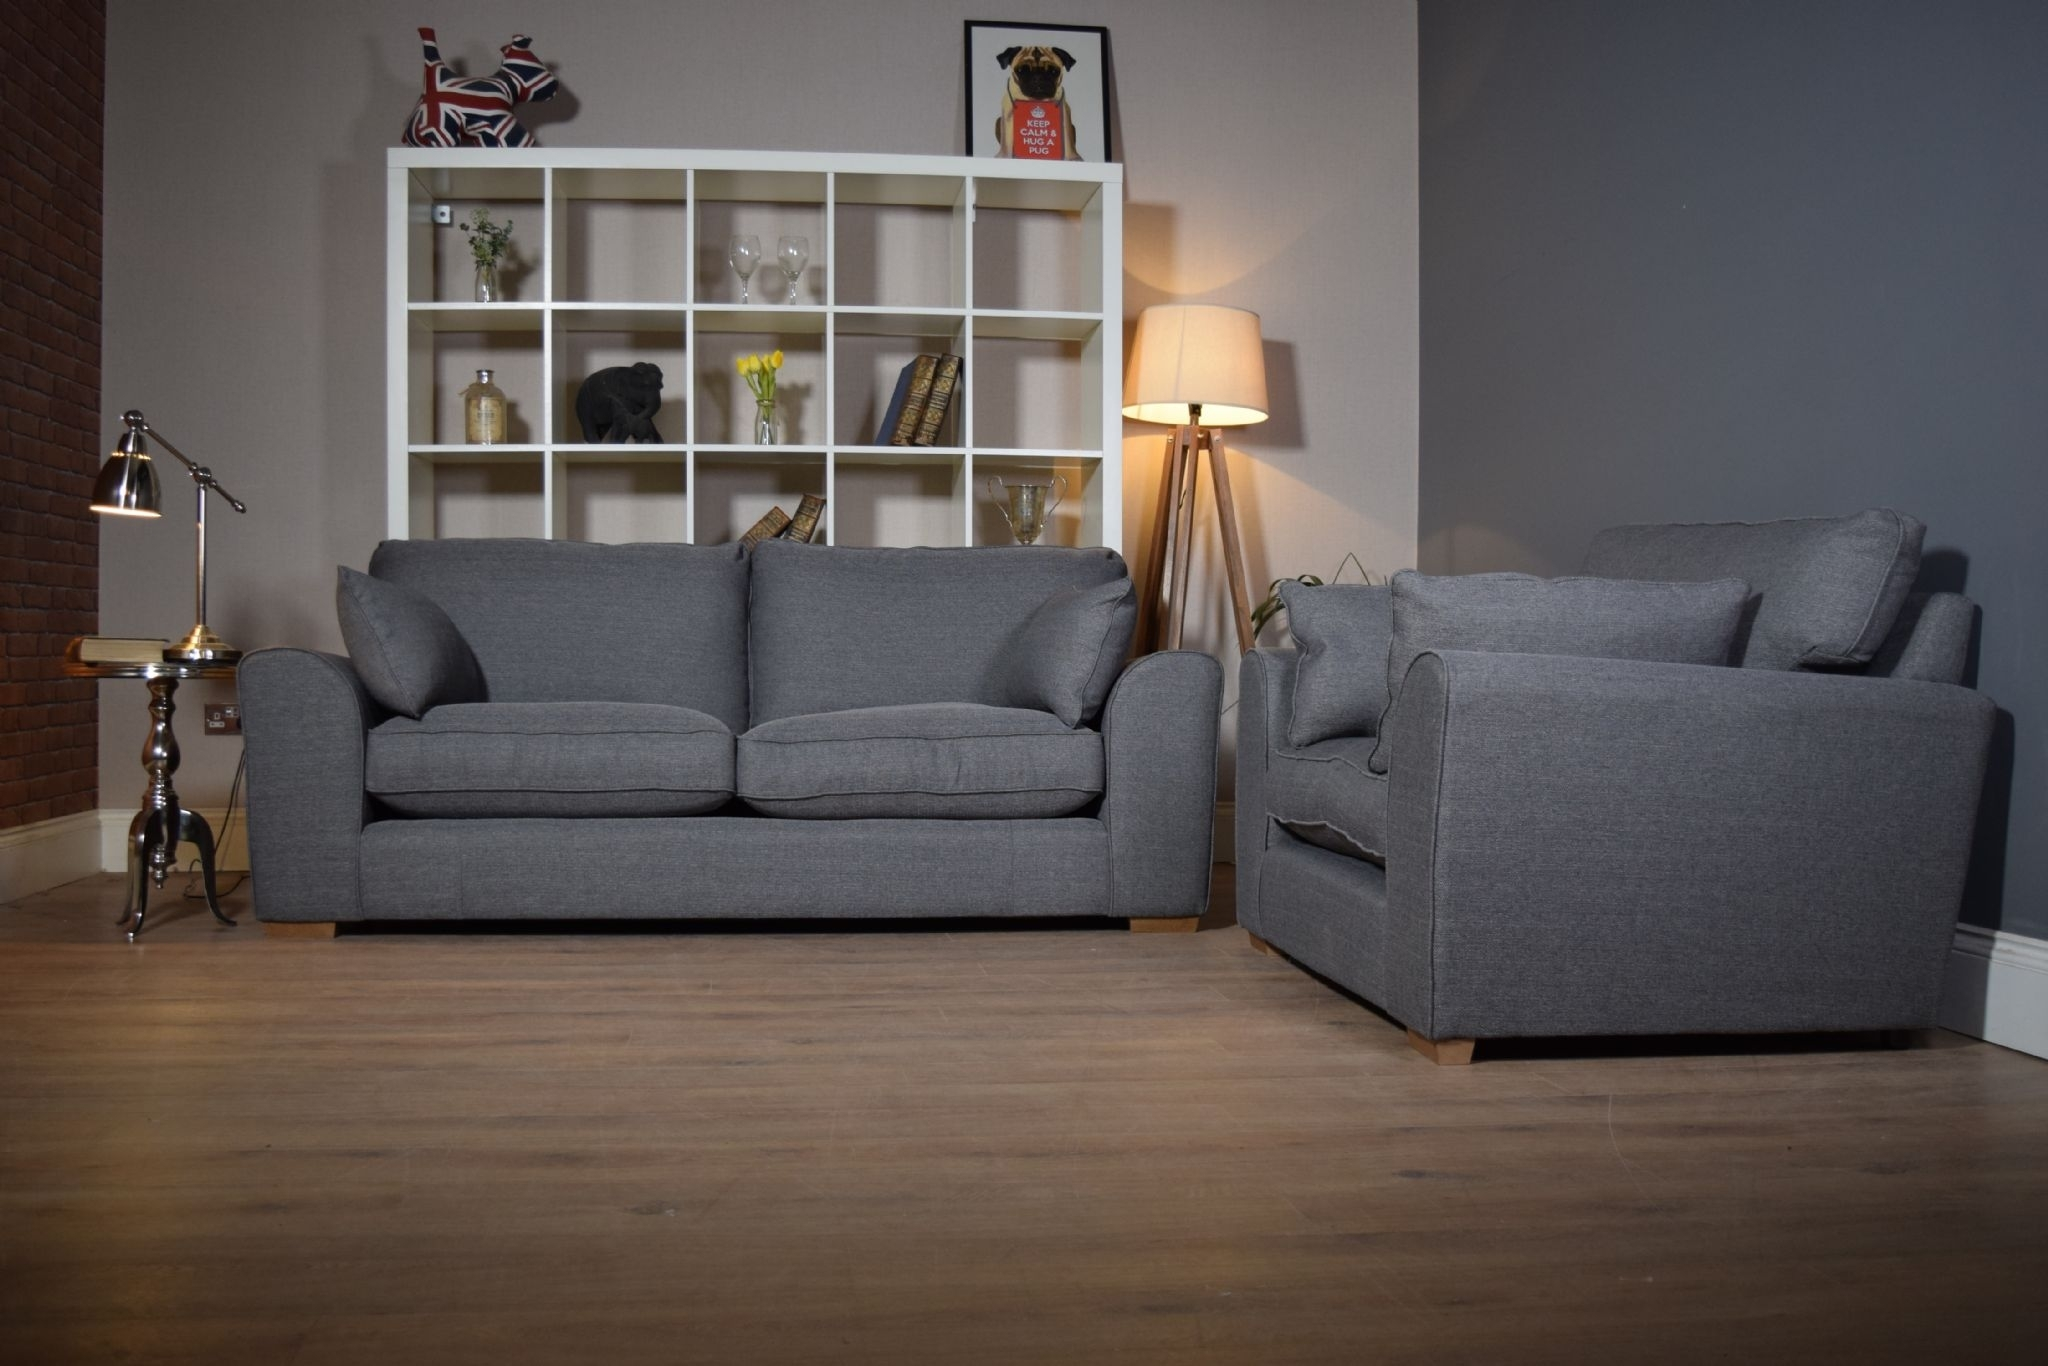 Set Ashdown 3 Seater Sofa & Cuddle Chair Set – Grey – Out Of Stock With 3 Seater Sofas And Cuddle Chairs (View 5 of 10)